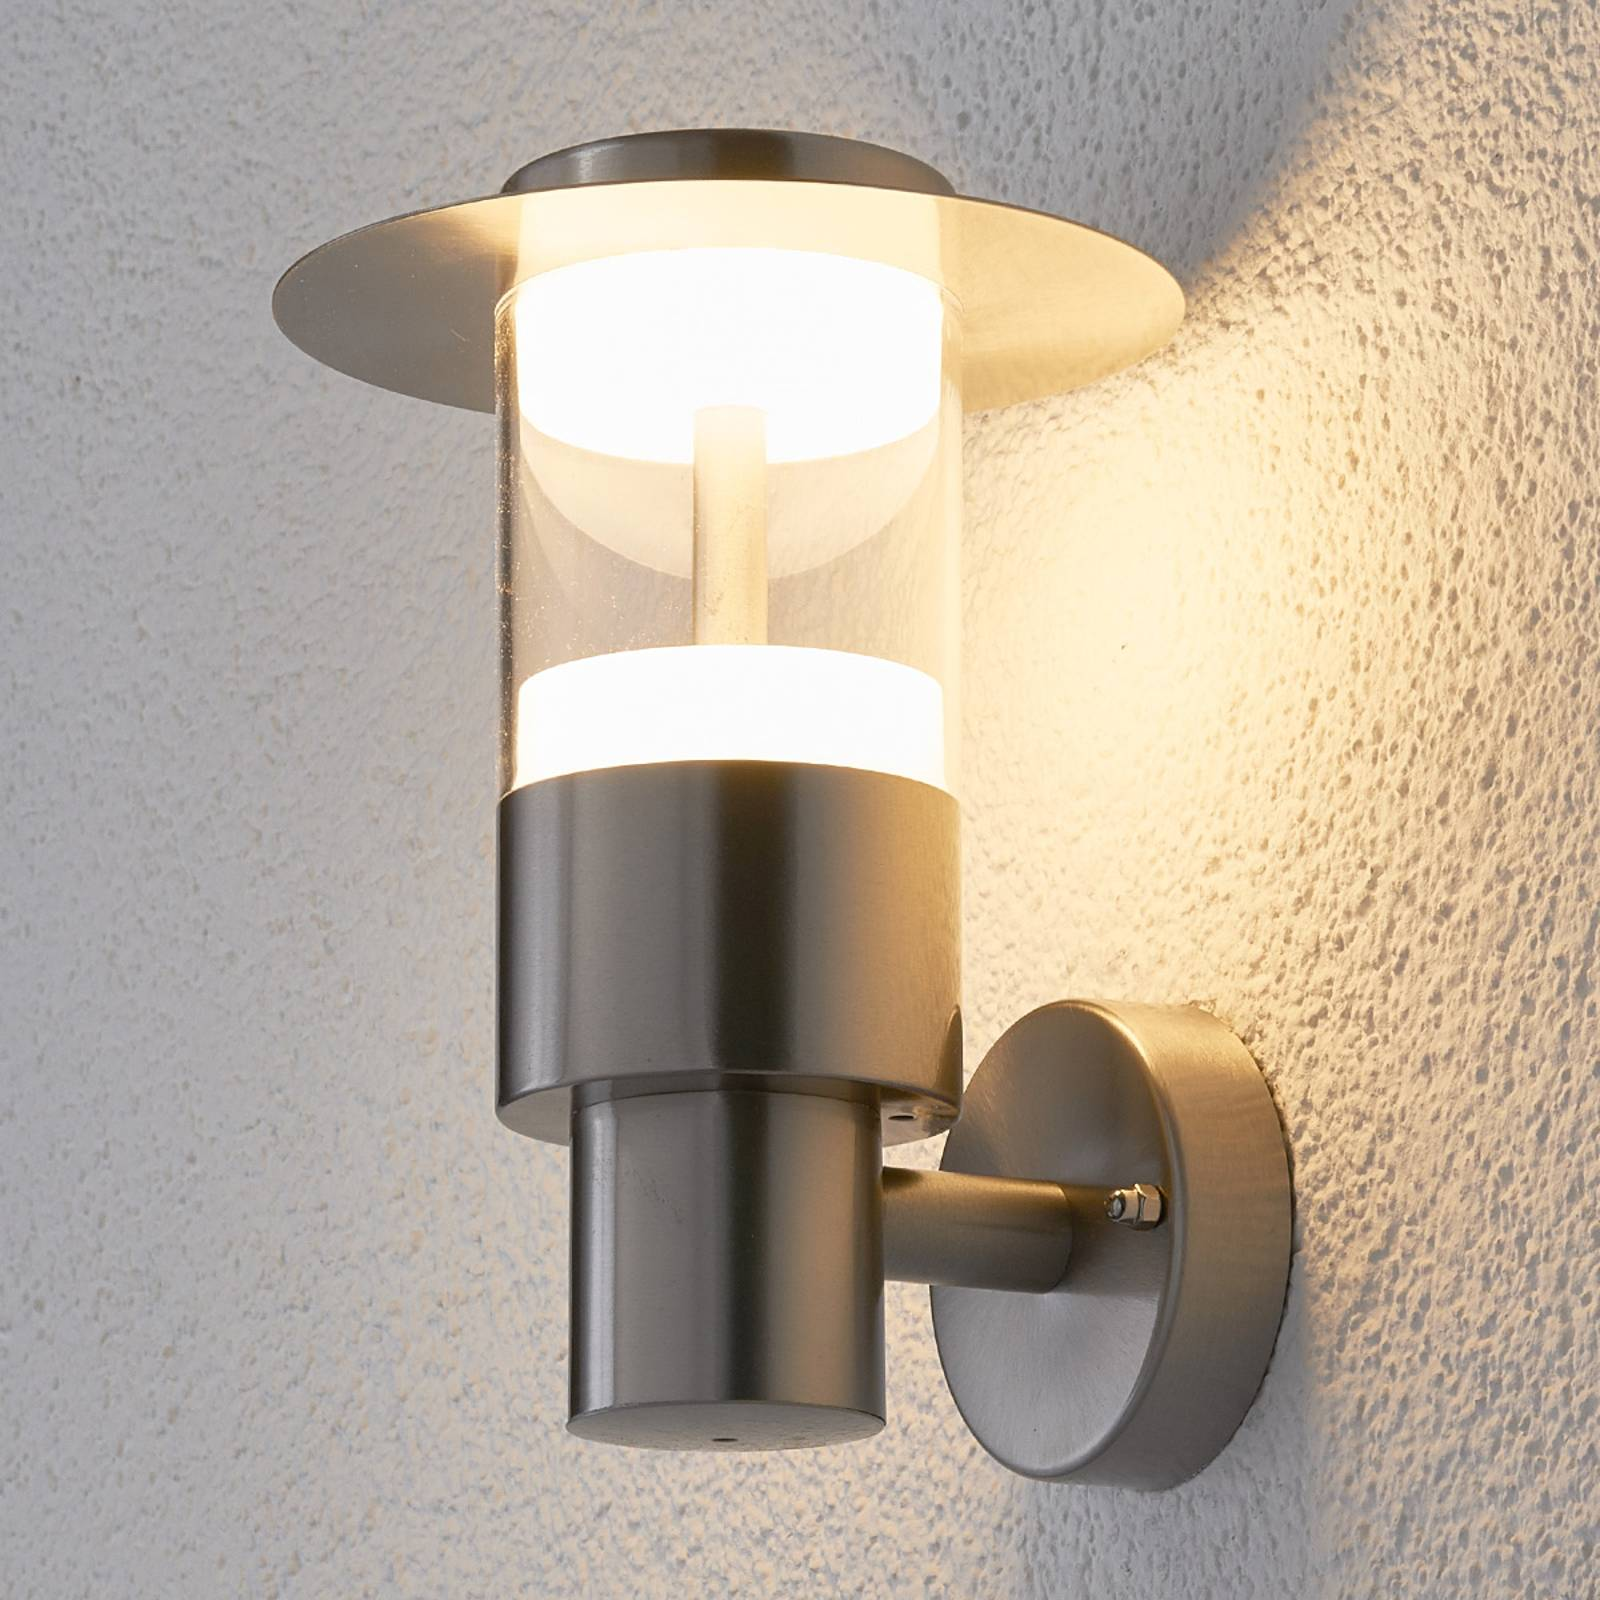 Anouk stainless steel outdoor wall light with LED from Lampenwelt.com